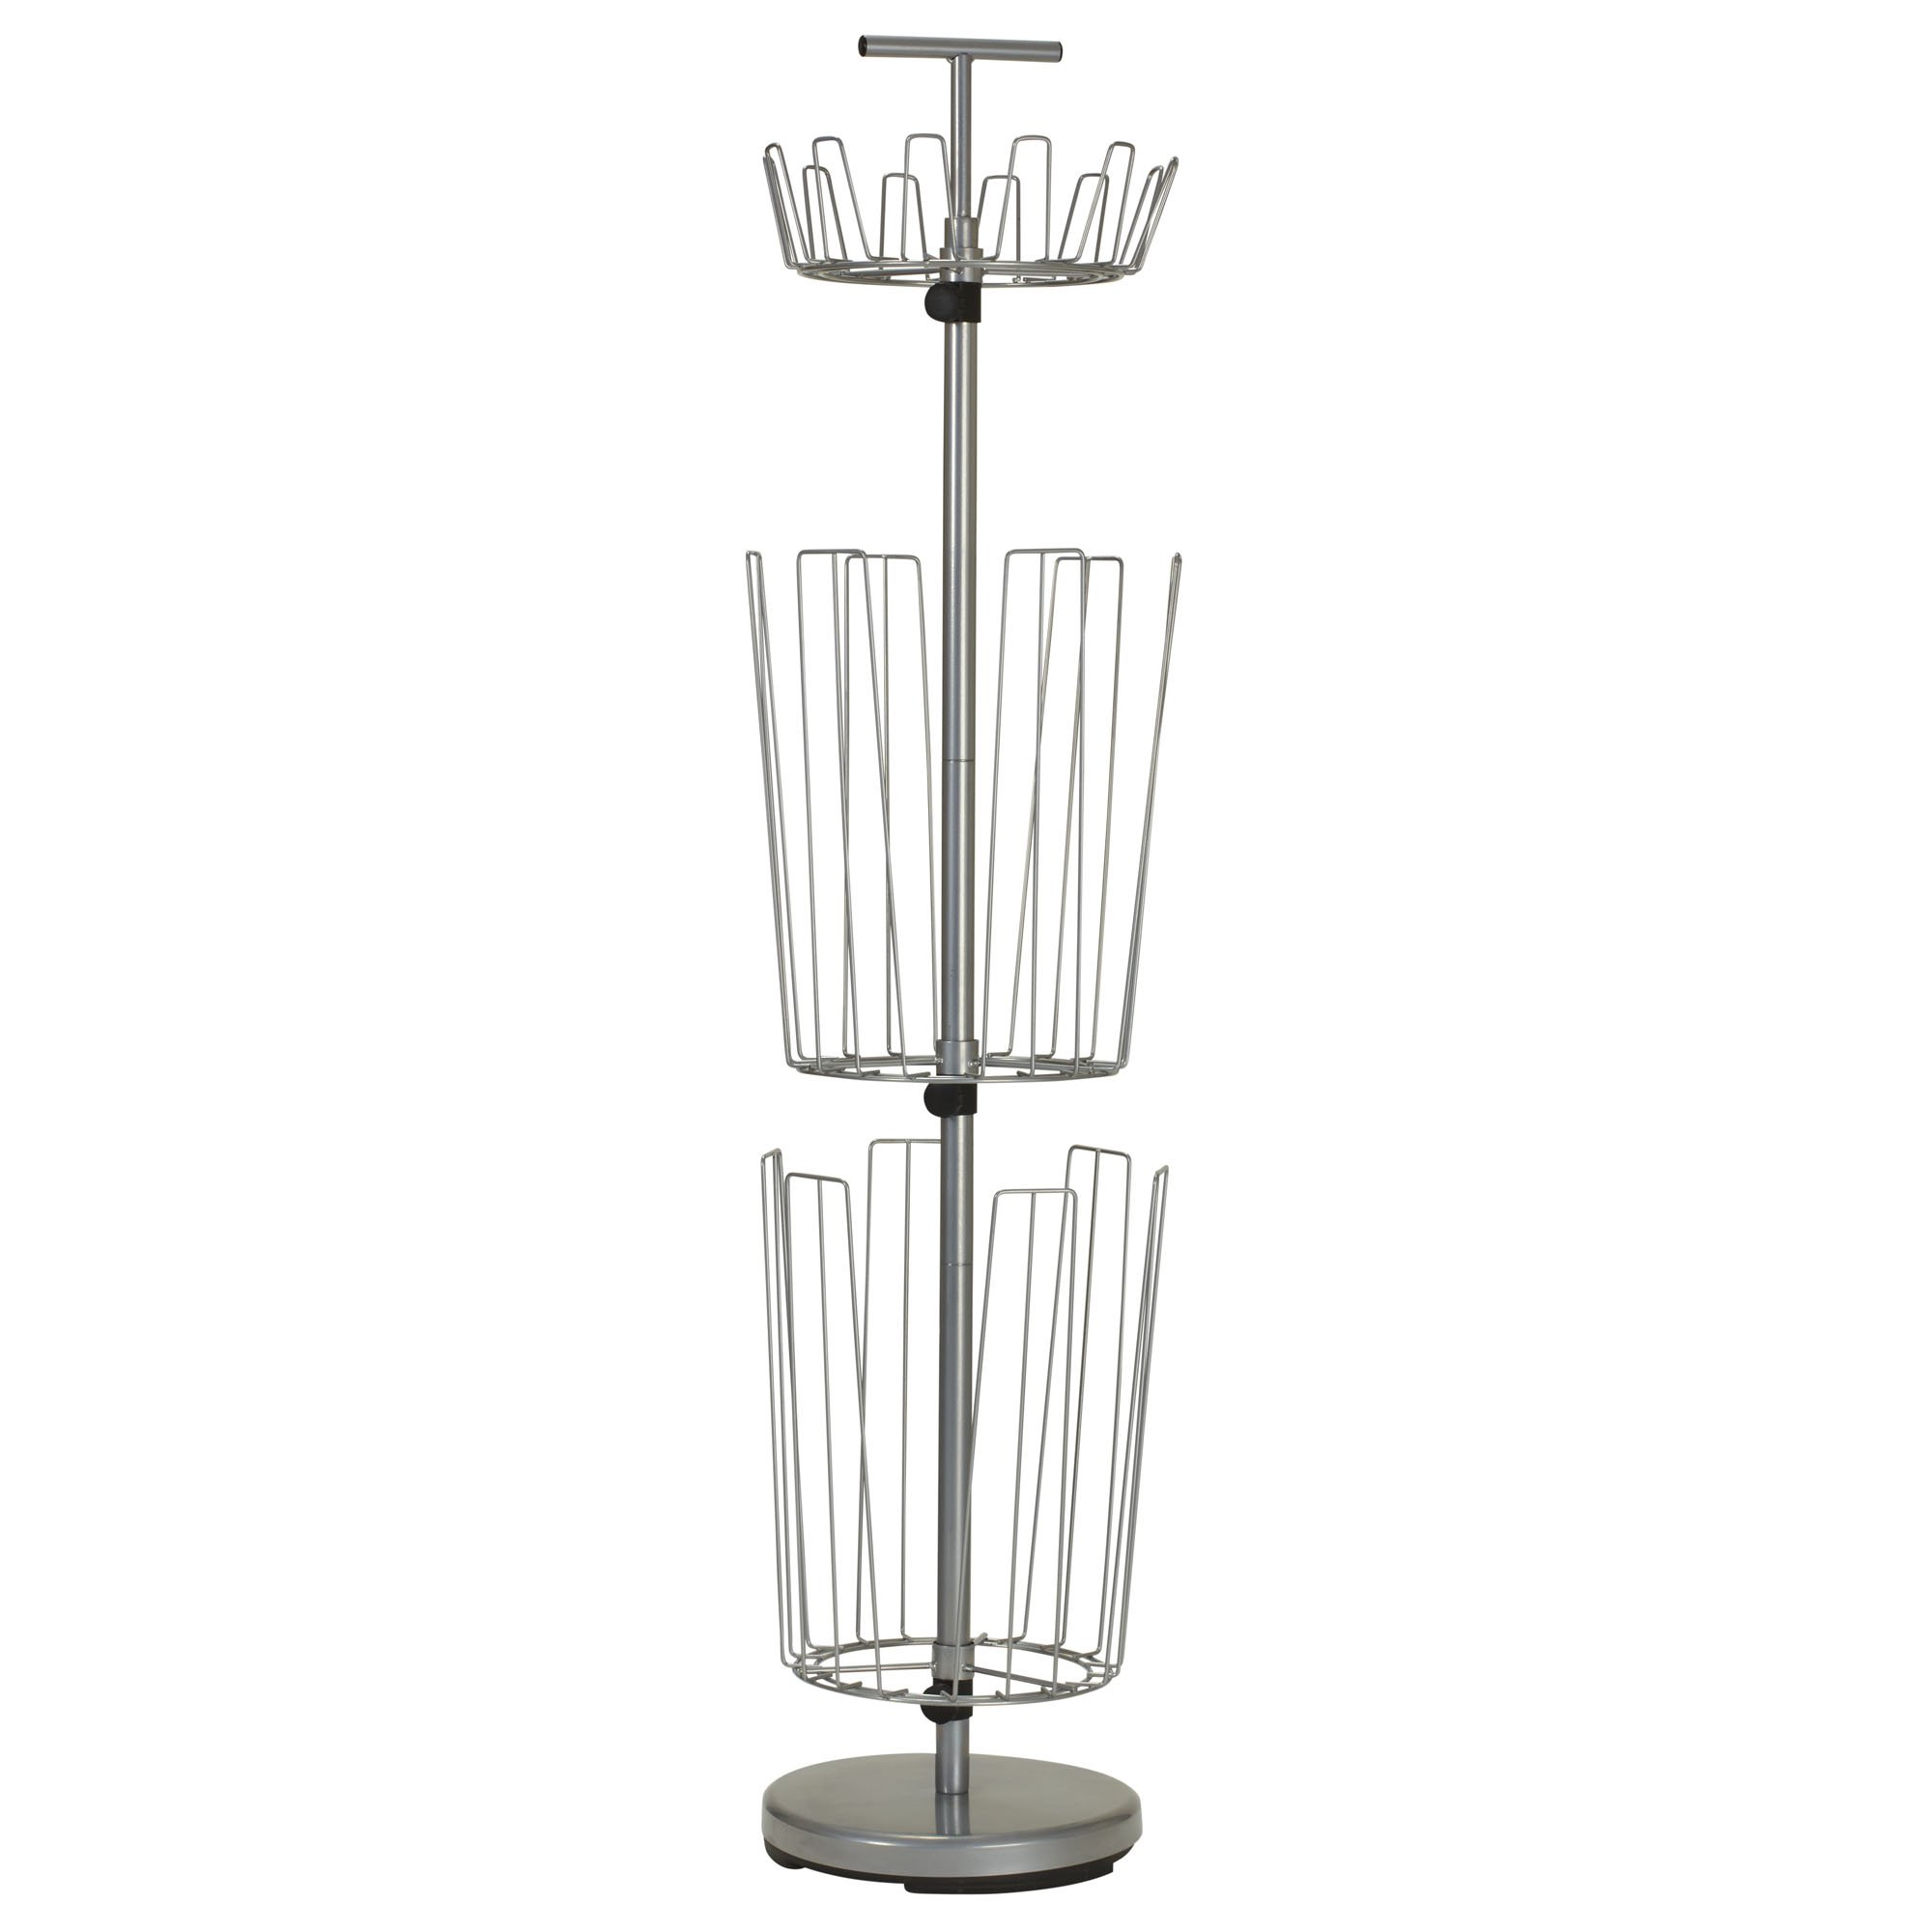 Household Essentials 2132-1 Metal 3-Tier Revolving Shoe and Boot Rack - Silver